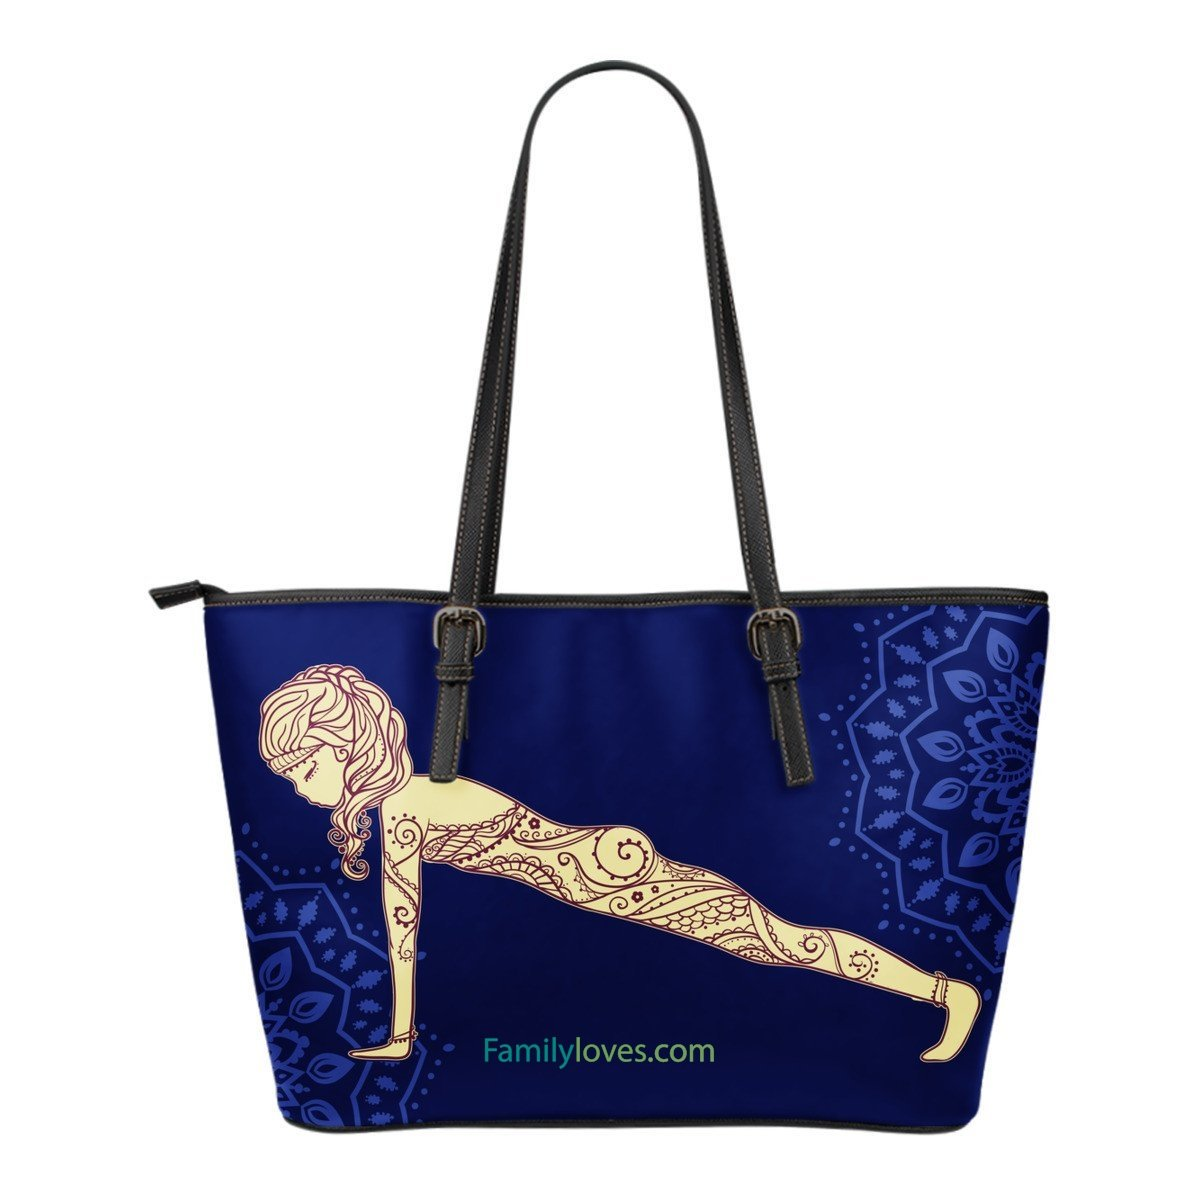 Where Can I Buy Yoga Bags 1